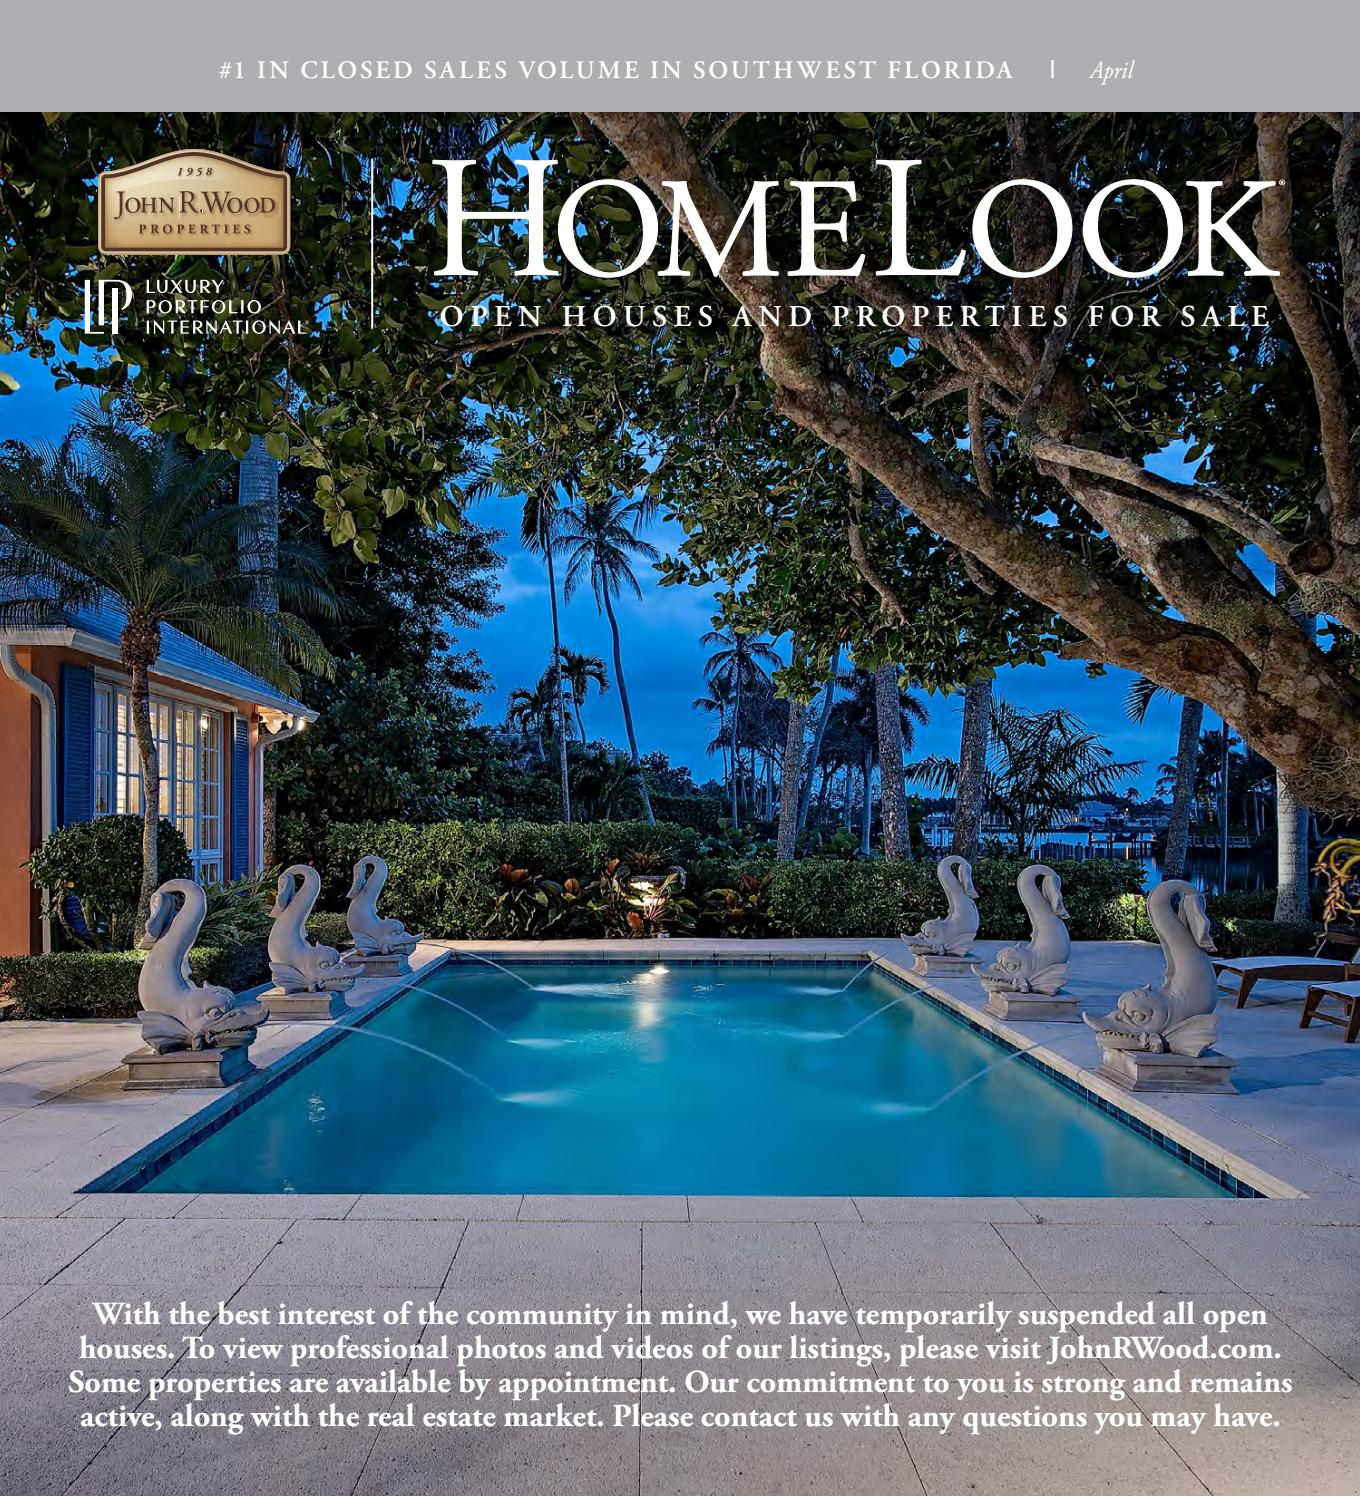 Homelook Magazine April 2020 By John R Wood Properties Issuu